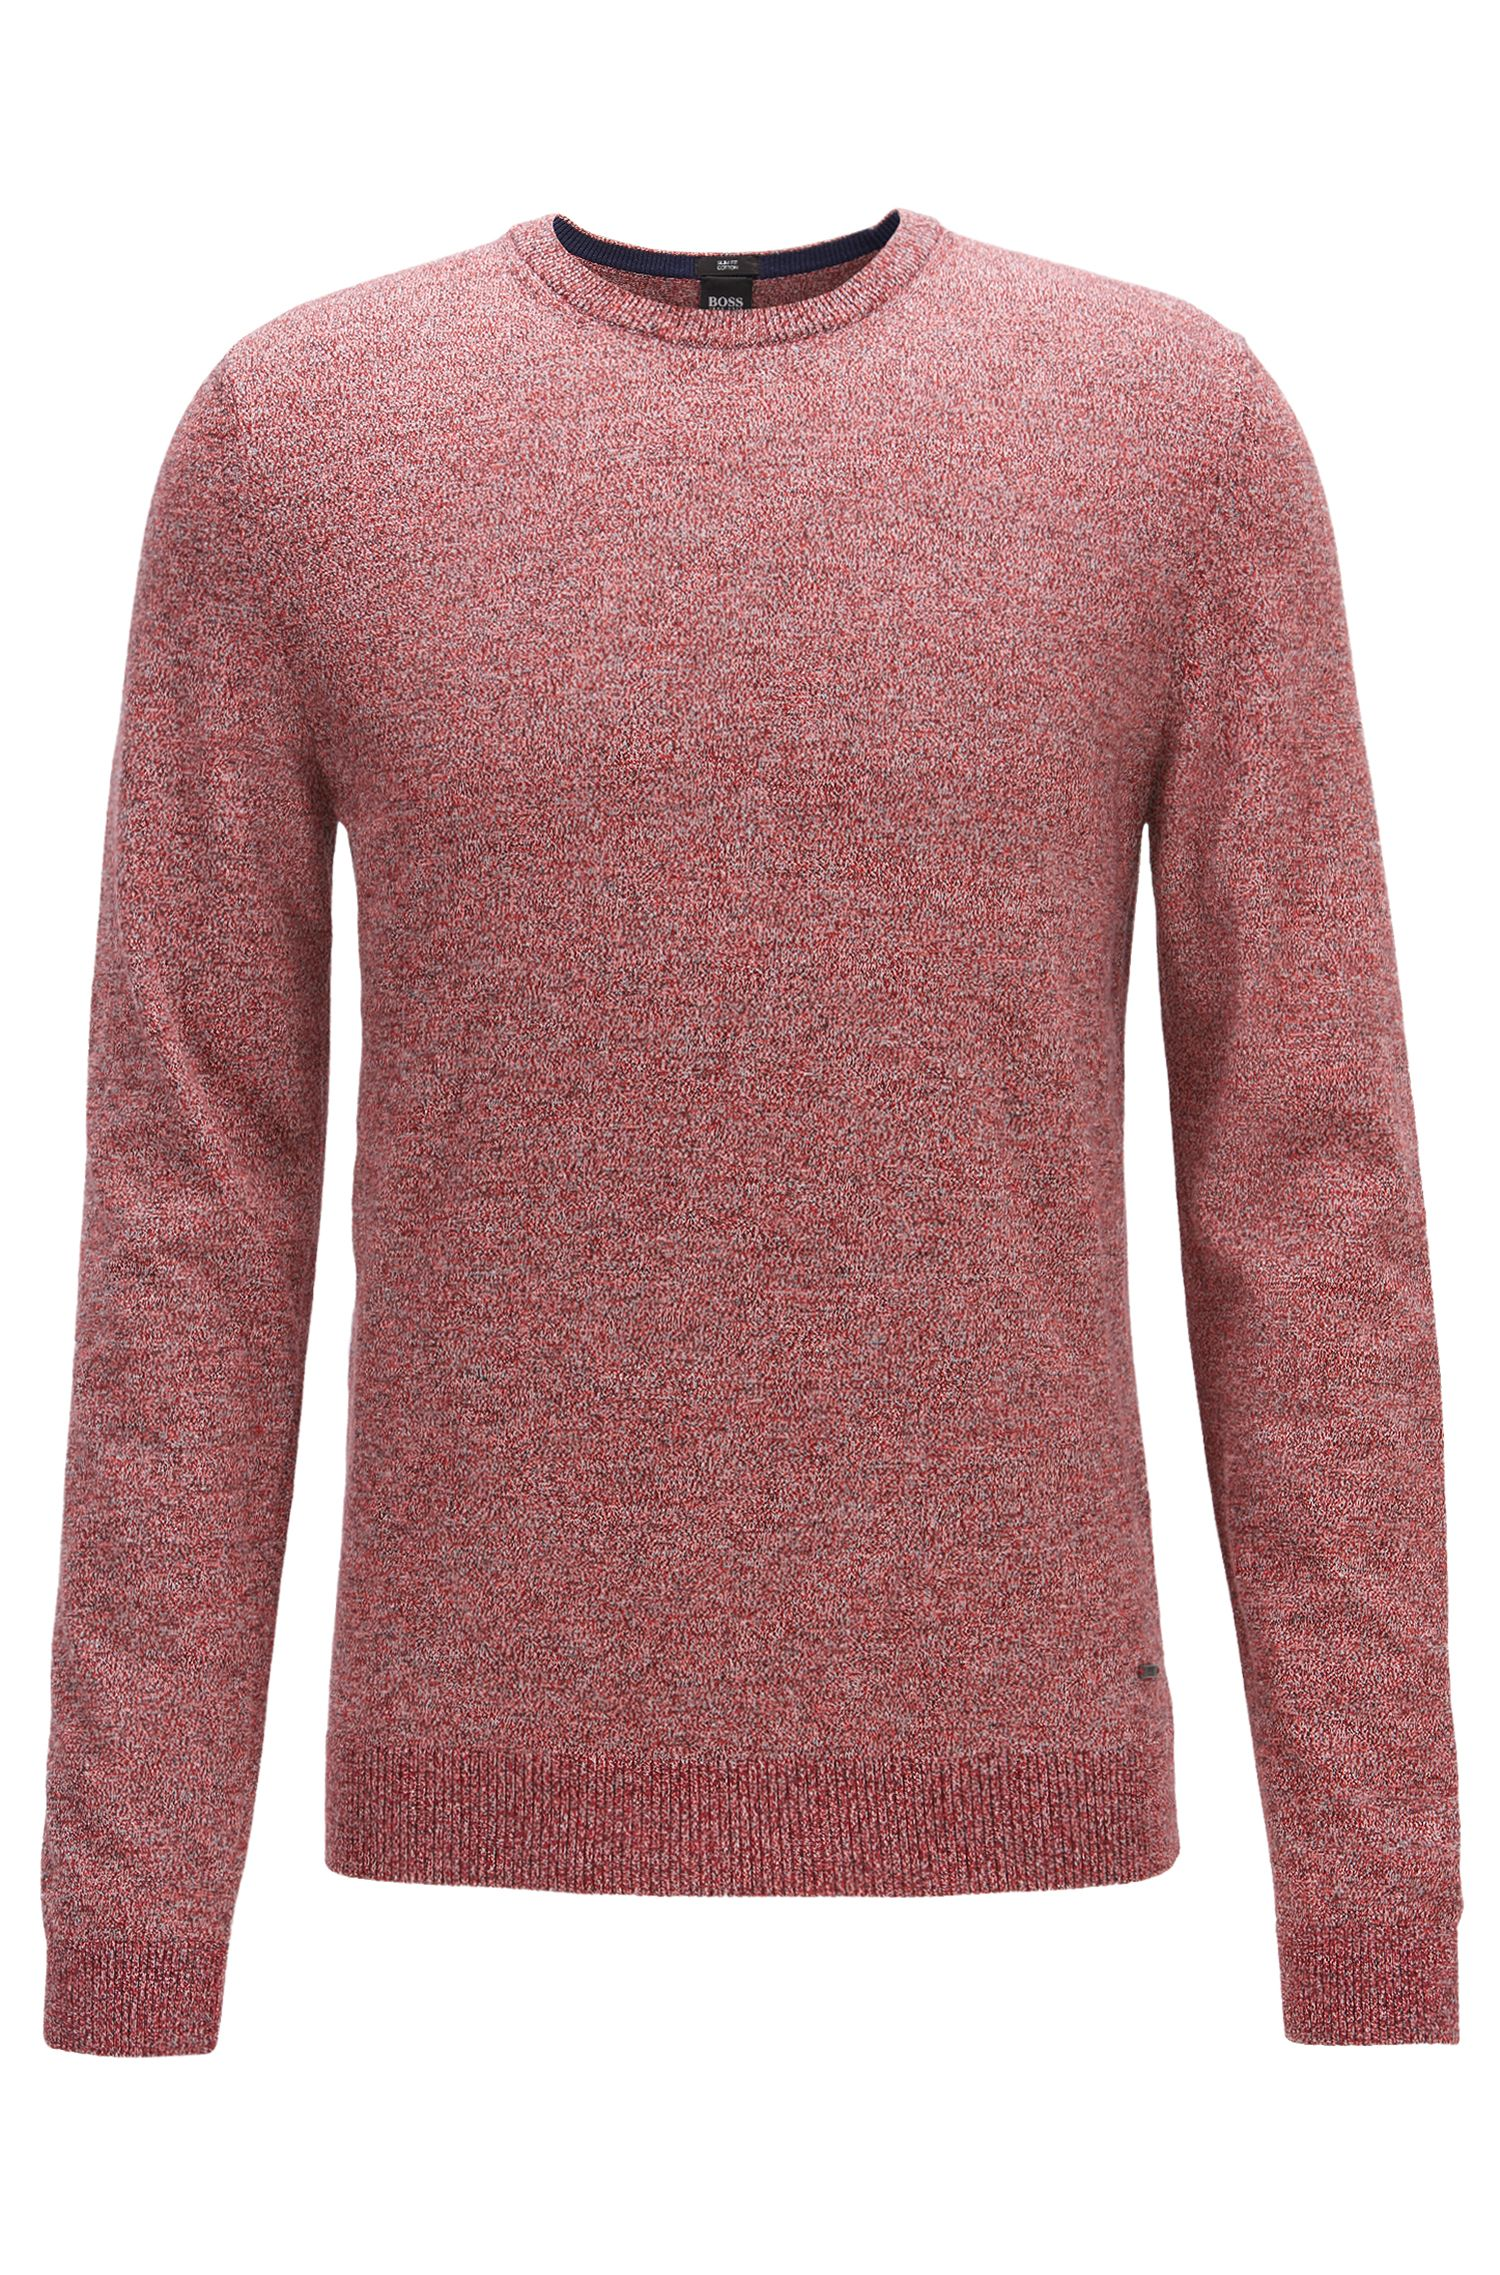 Crew-neck sweater in mouliné Egyptian cotton